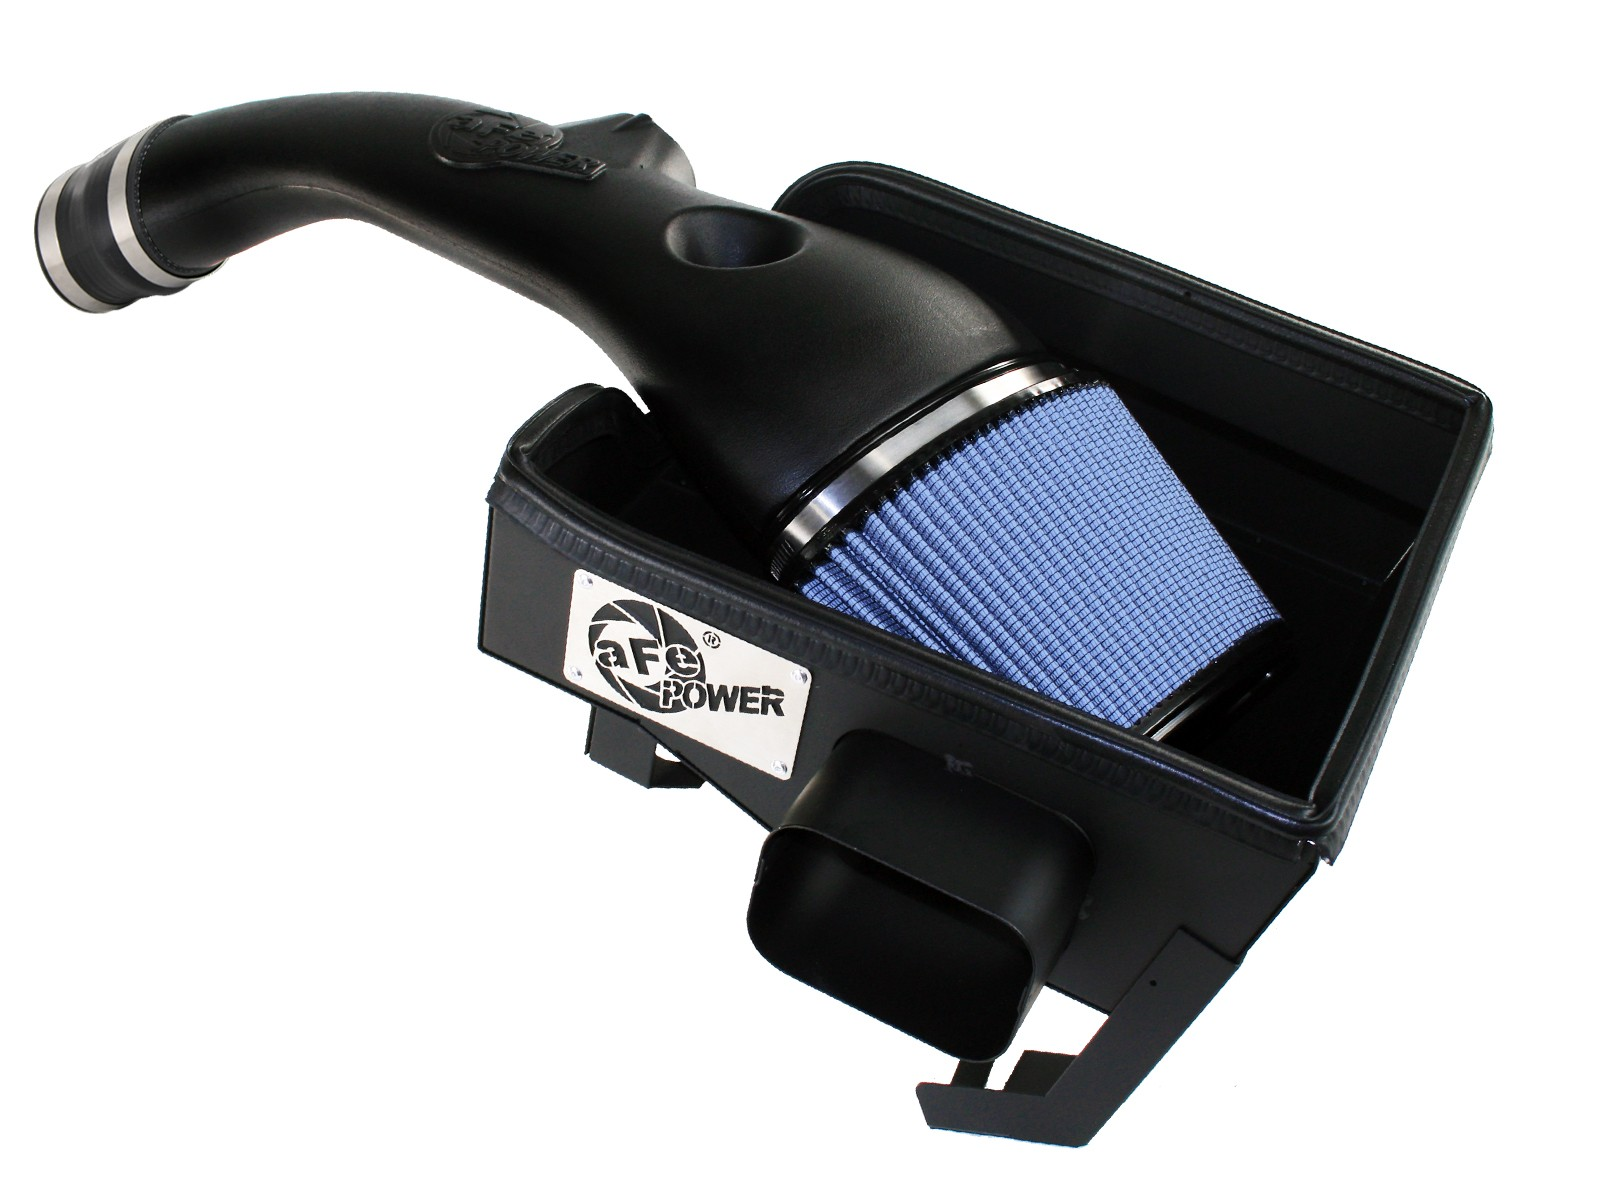 aFe POWER 54-11912 Magnum FORCE Stage-2 Pro 5R Cold Air Intake System